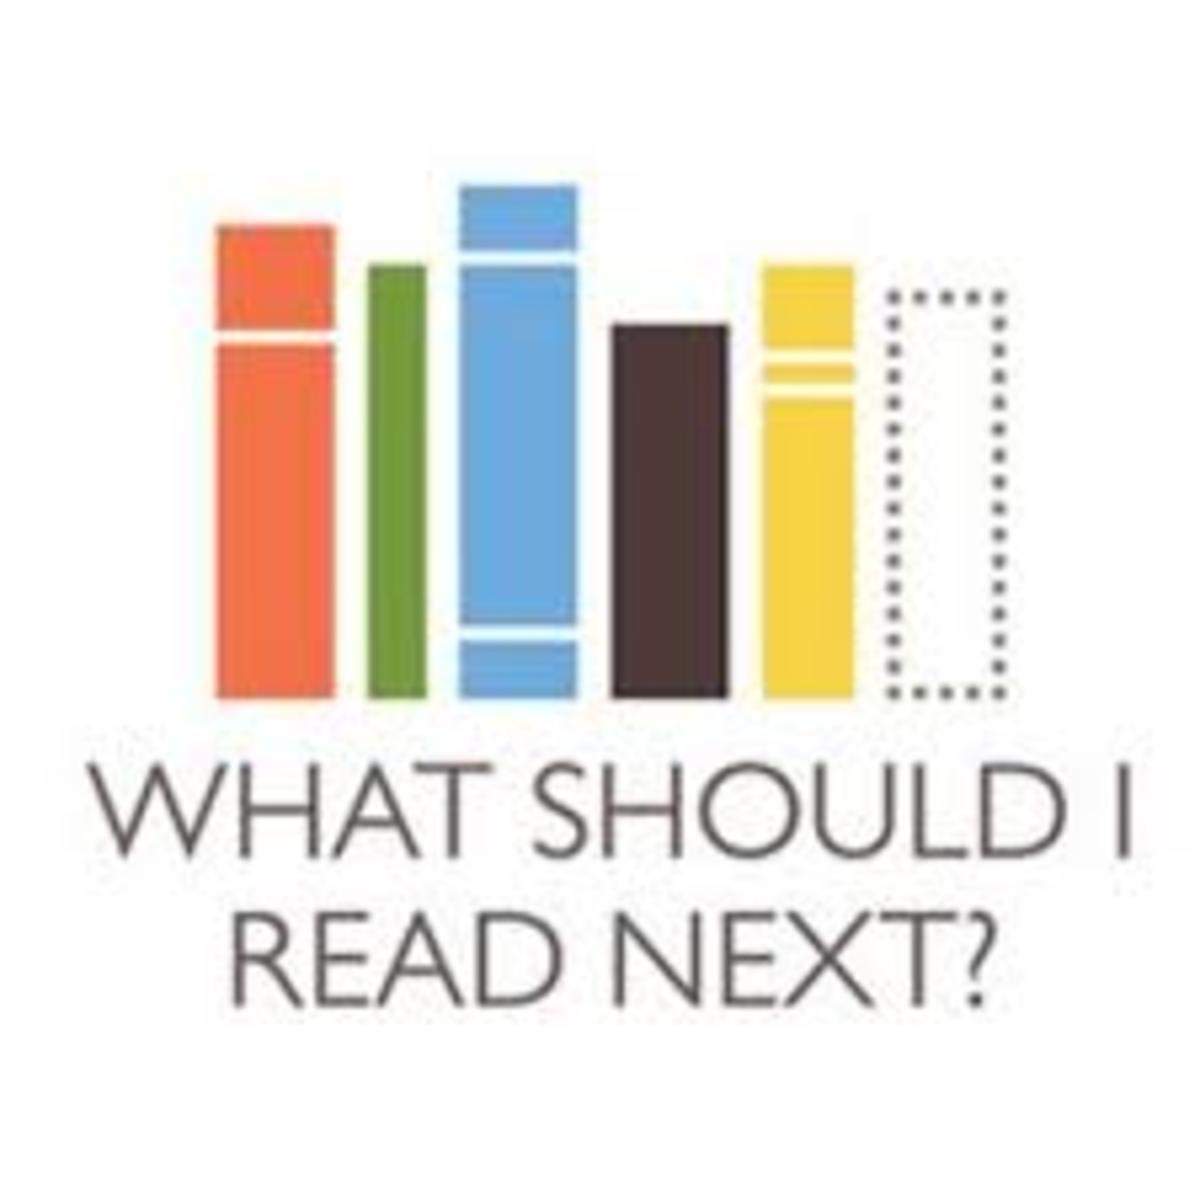 looking-for-a-new-book-to-read-get-book-recommendations-from-people-like-you